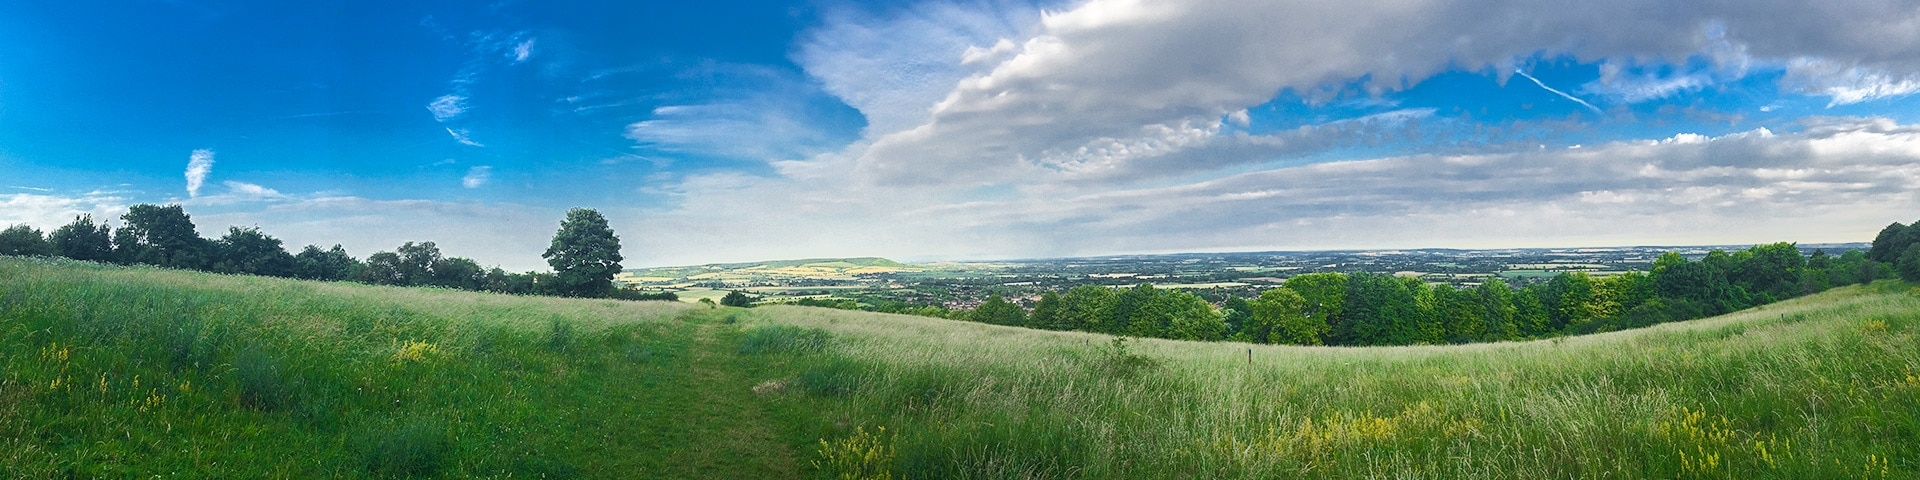 Panoramic views from the Brush Hill & White Leaf Nature Reserve hike in Chiltern Hills, England